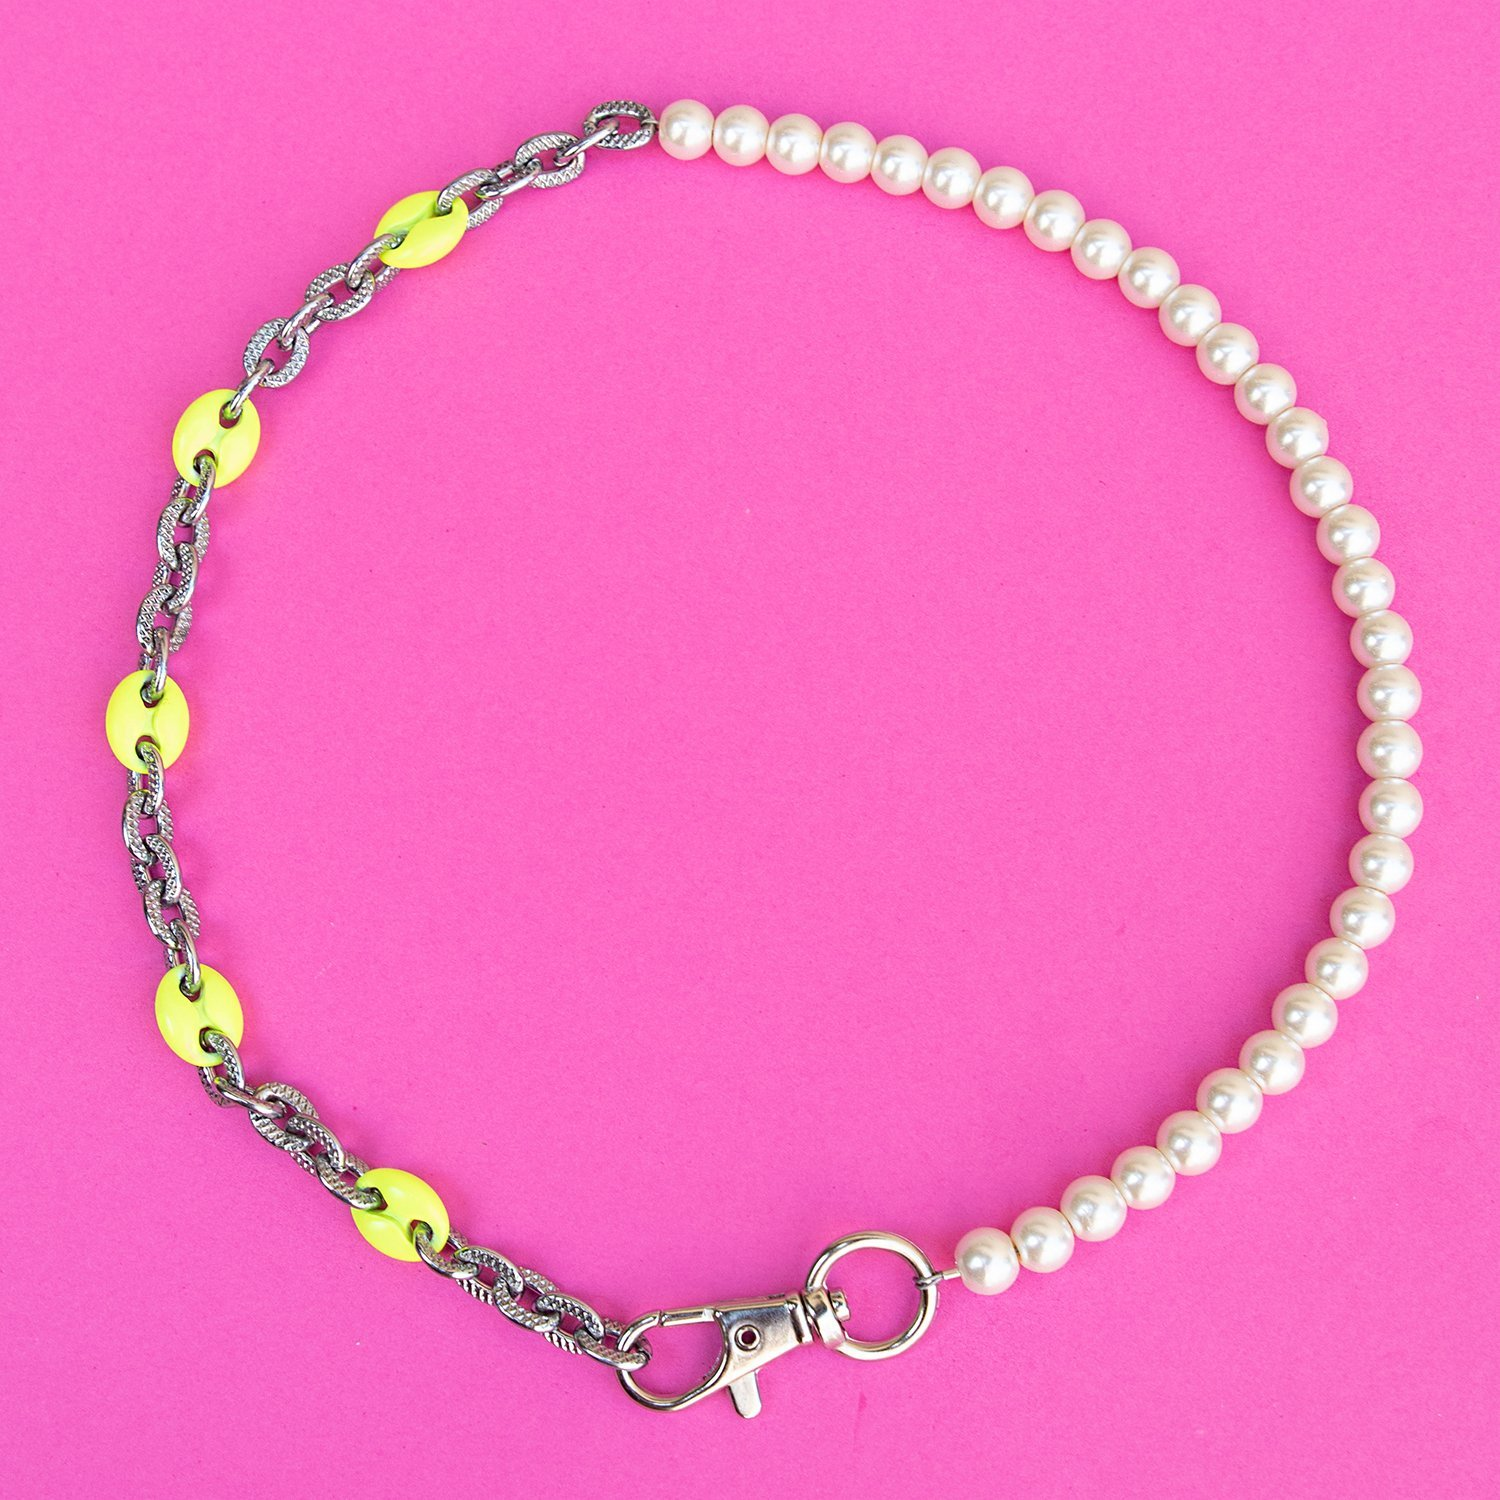 Image of Pearl 50/50 Neon Mariner Necklace